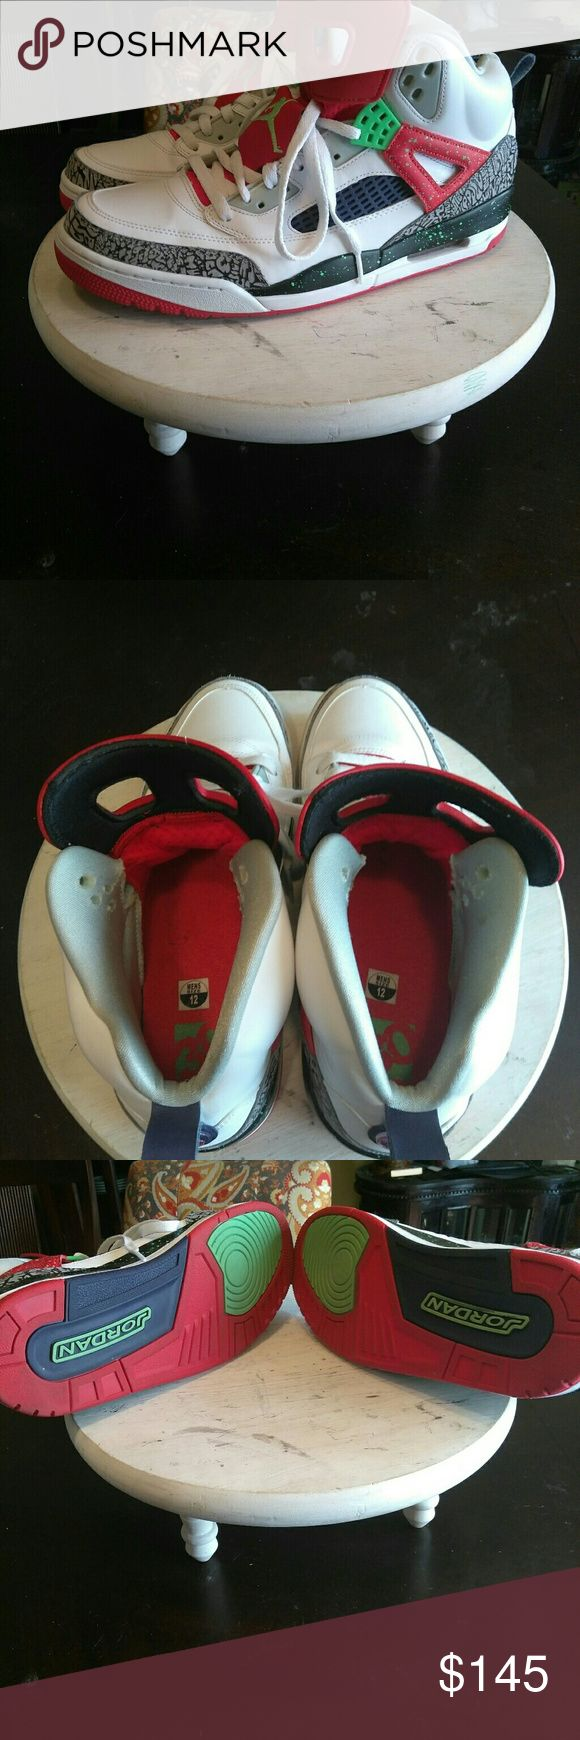 🦃Jordan-Spike Lee Edition Check out these fabulous sneakers!!! Super rare and hard to find!!! Worn a total of 3 times so in like-new condition inside and out!!! Jordan Shoes Sneakers